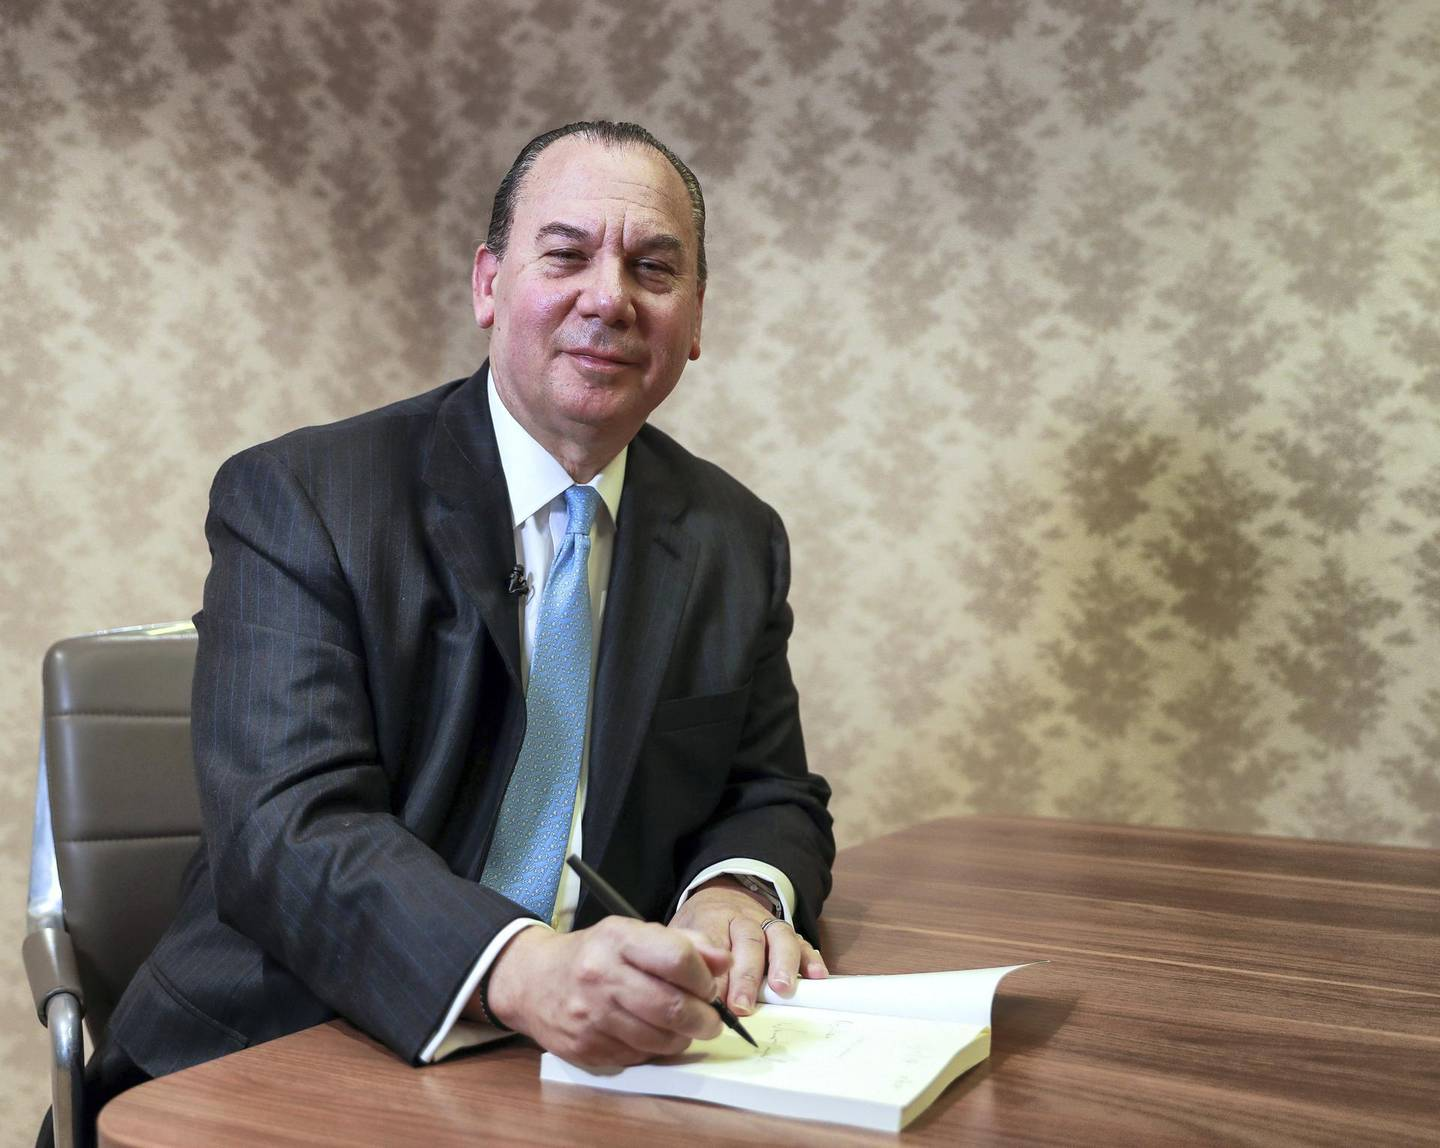 Abu Dhabi, U.A.E., February 4, 2019.   Rabbi Marc Schneier interview at The National office.Victor Besa/The NationalSection:  NAReporter:  Gillian Duncan